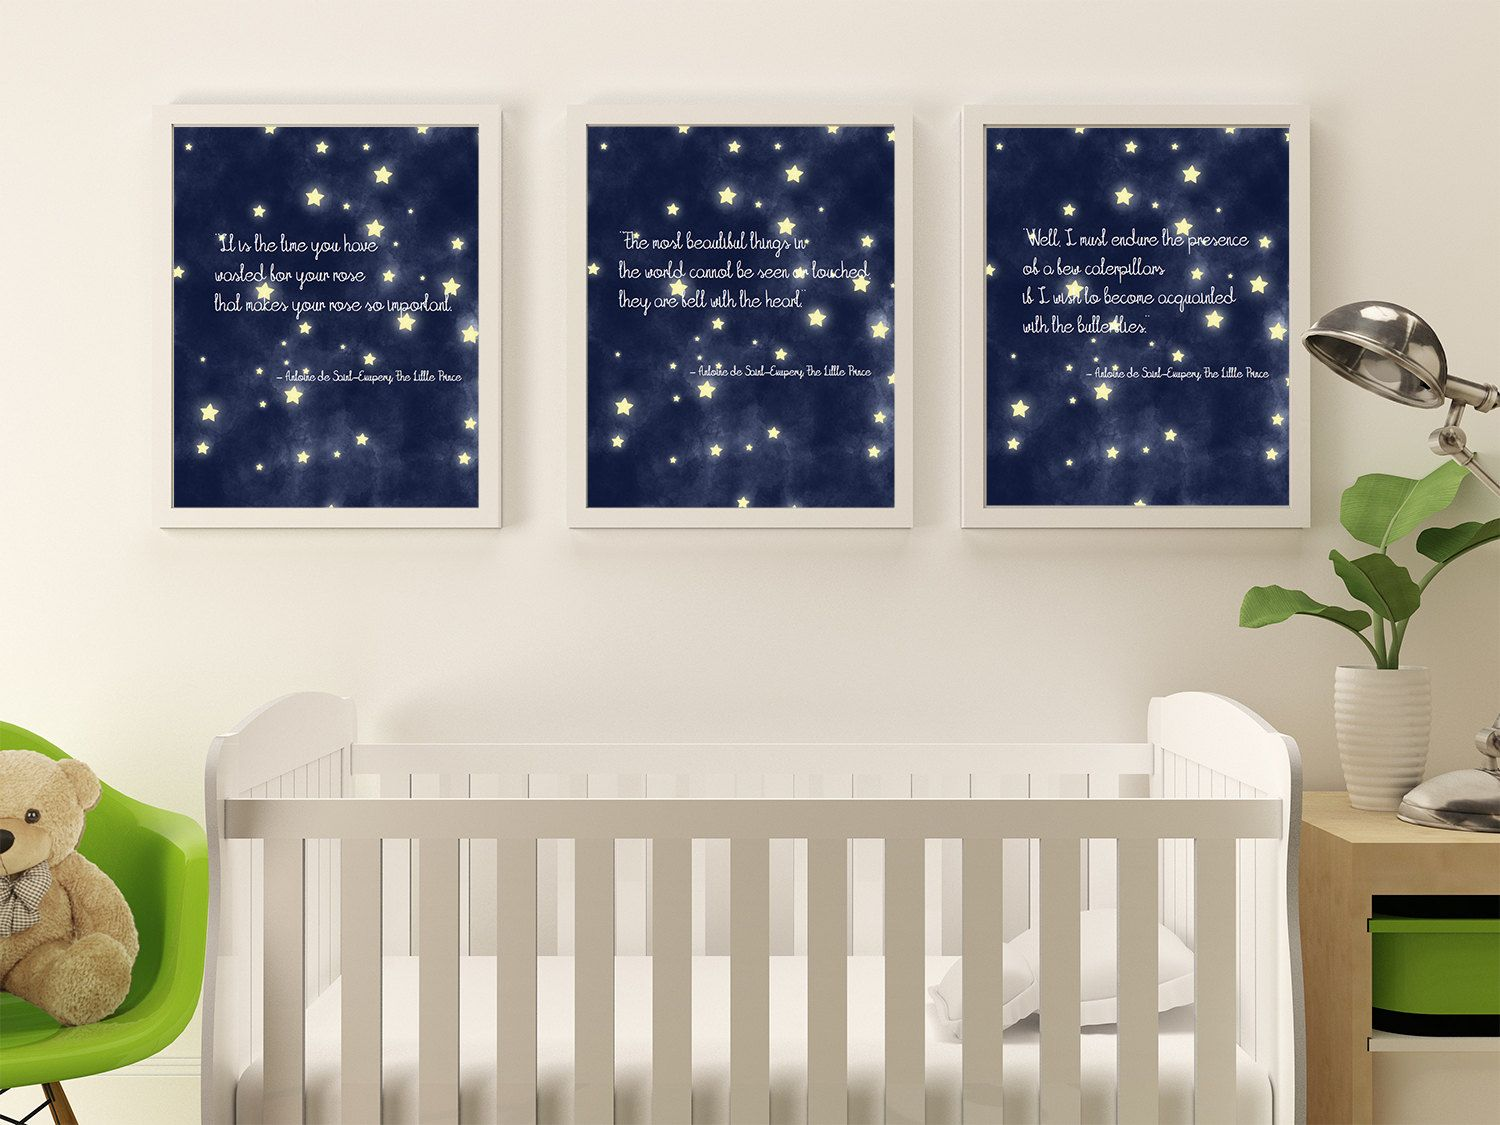 Printable Wall Art Le Petit Prince The Little Prince Nursery Decor Prince Nursery Decor Prince Nursery Petit Prince Nursery